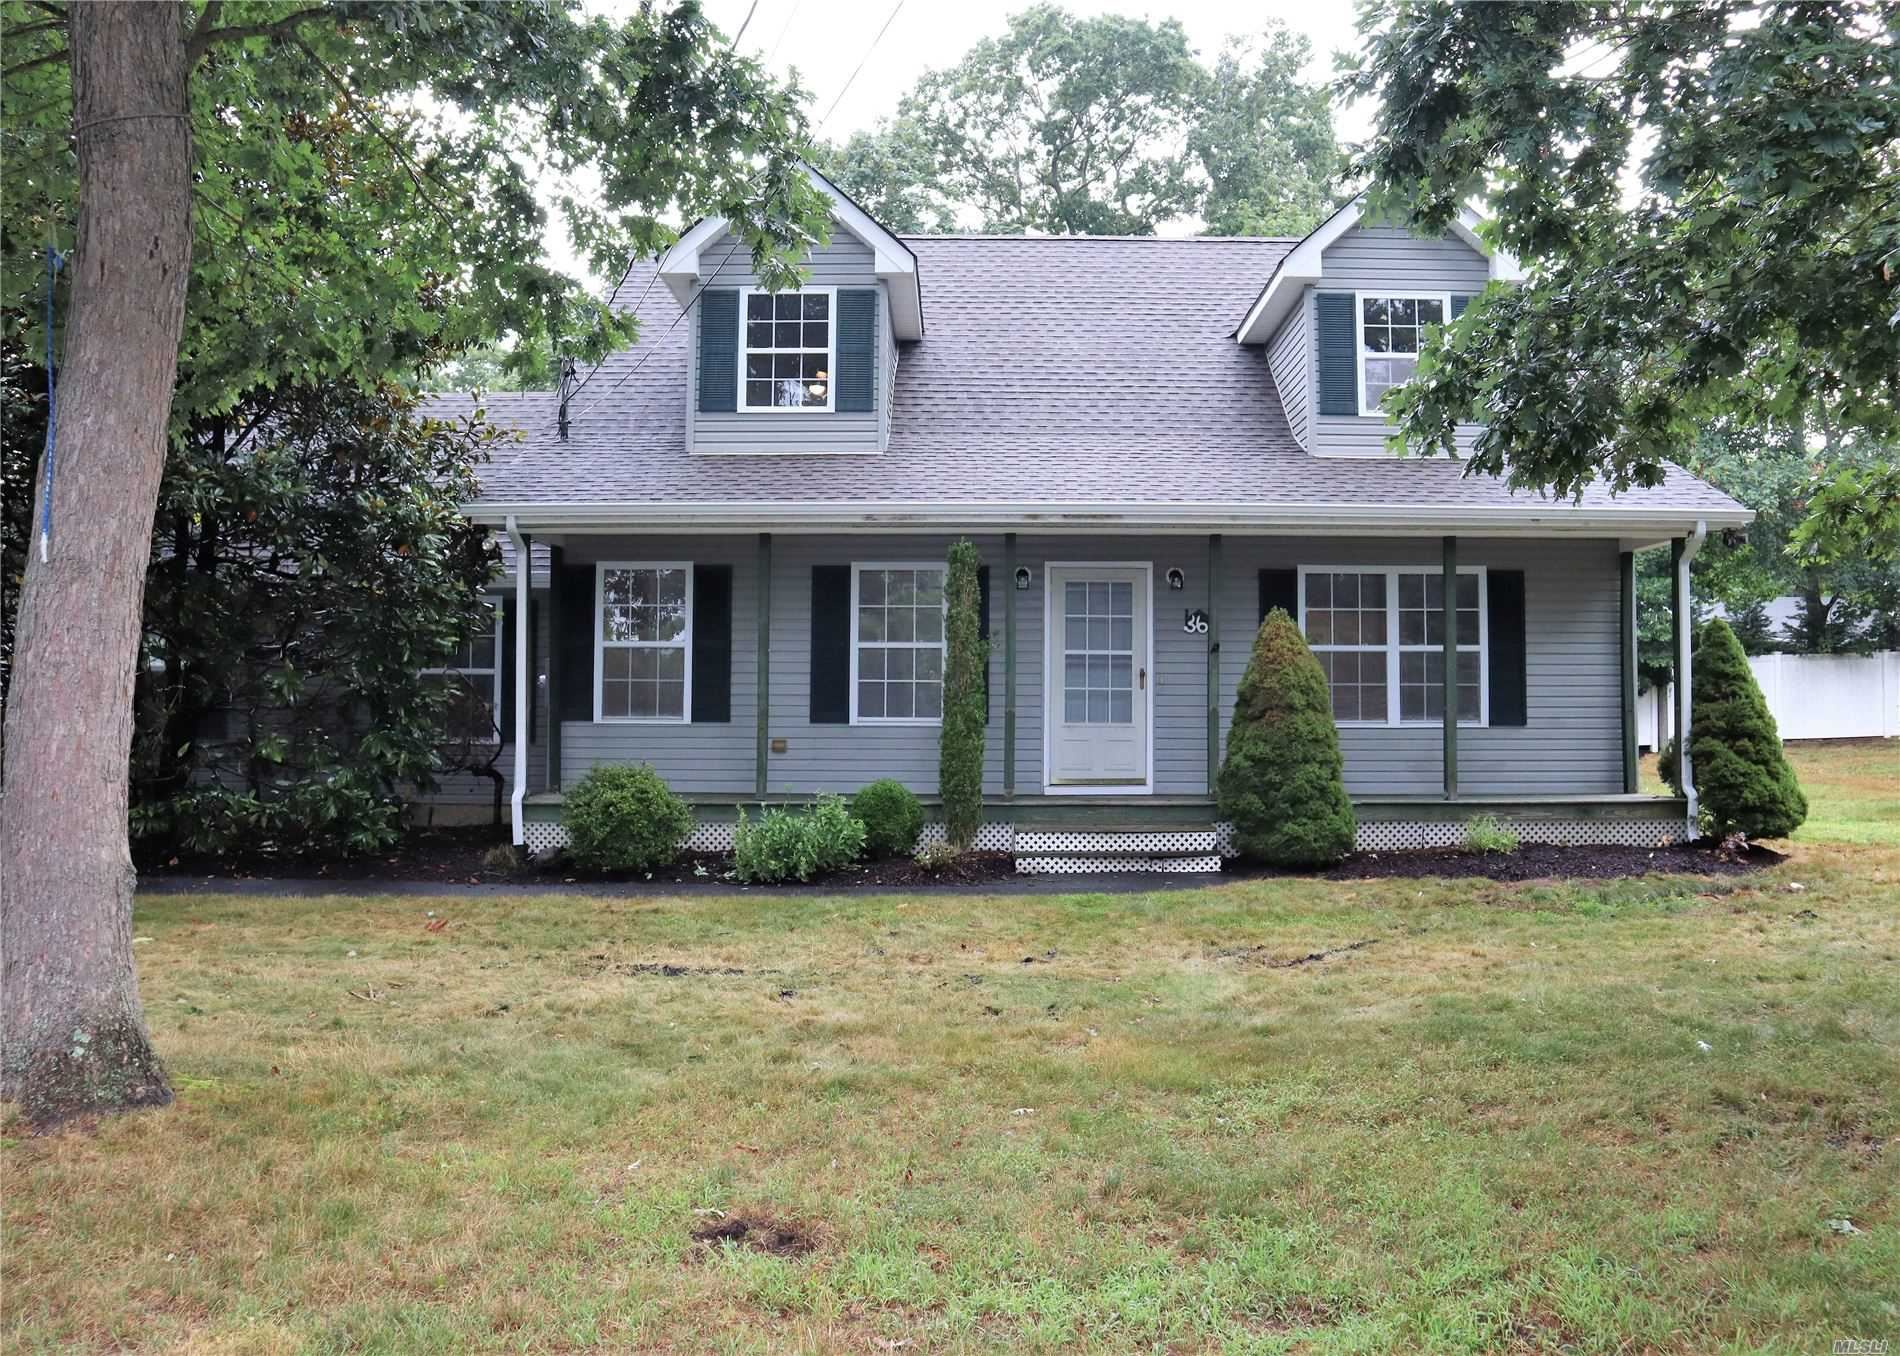 36 A Miller Ave, East Moriches, NY 11940 - MLS#: 3236340